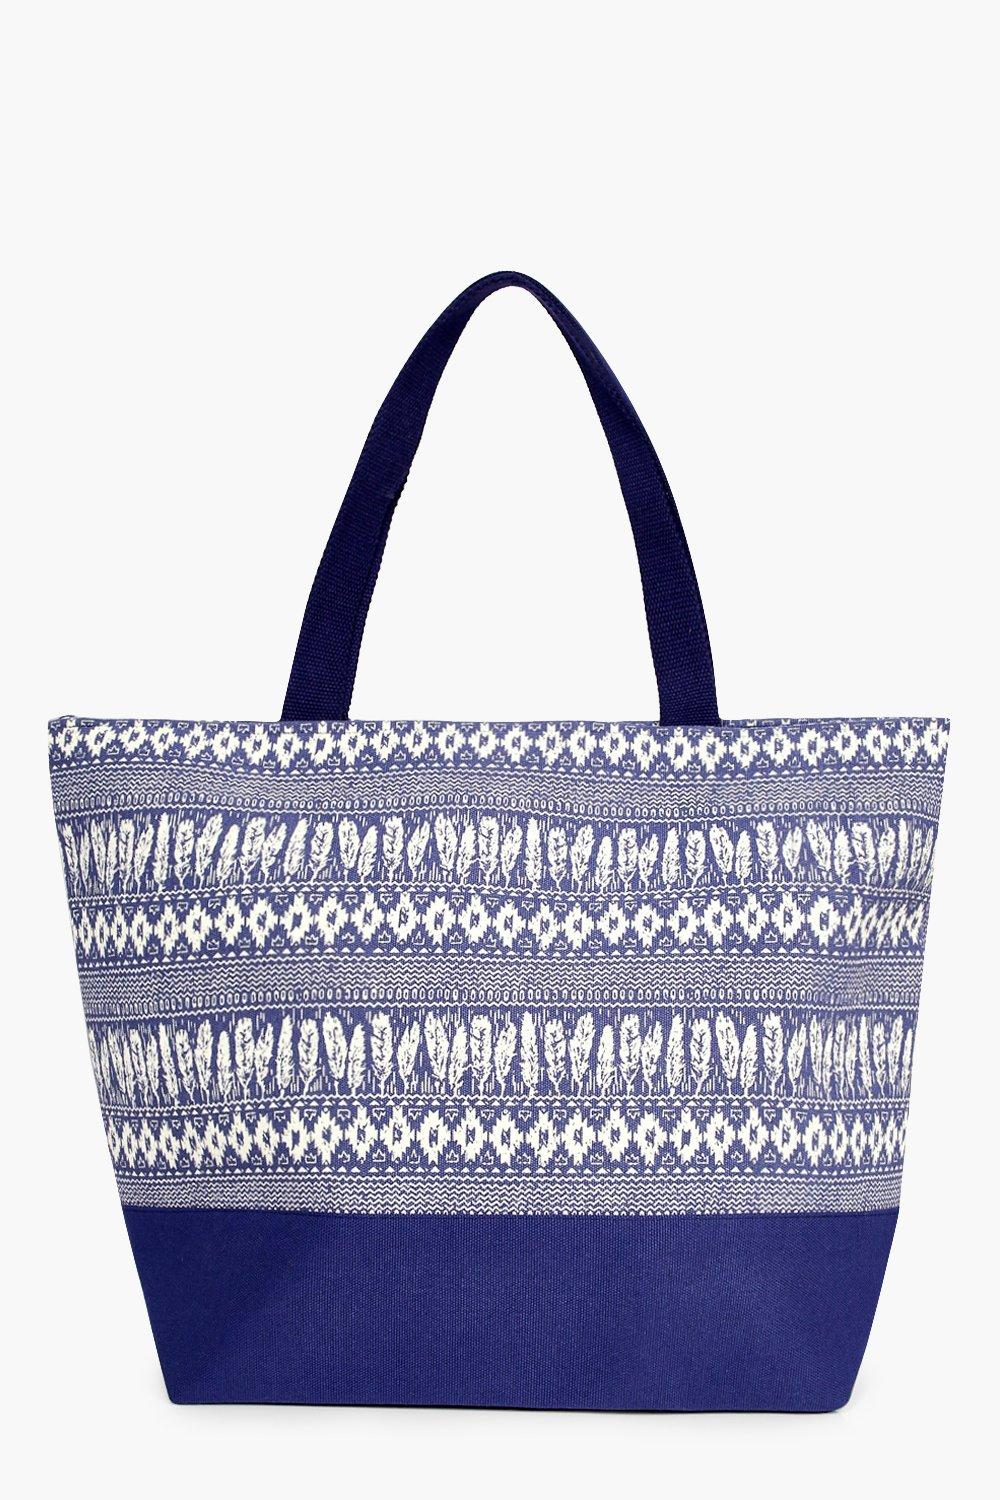 Feather Print Beach Bag - blue - Sophia Feather Pr